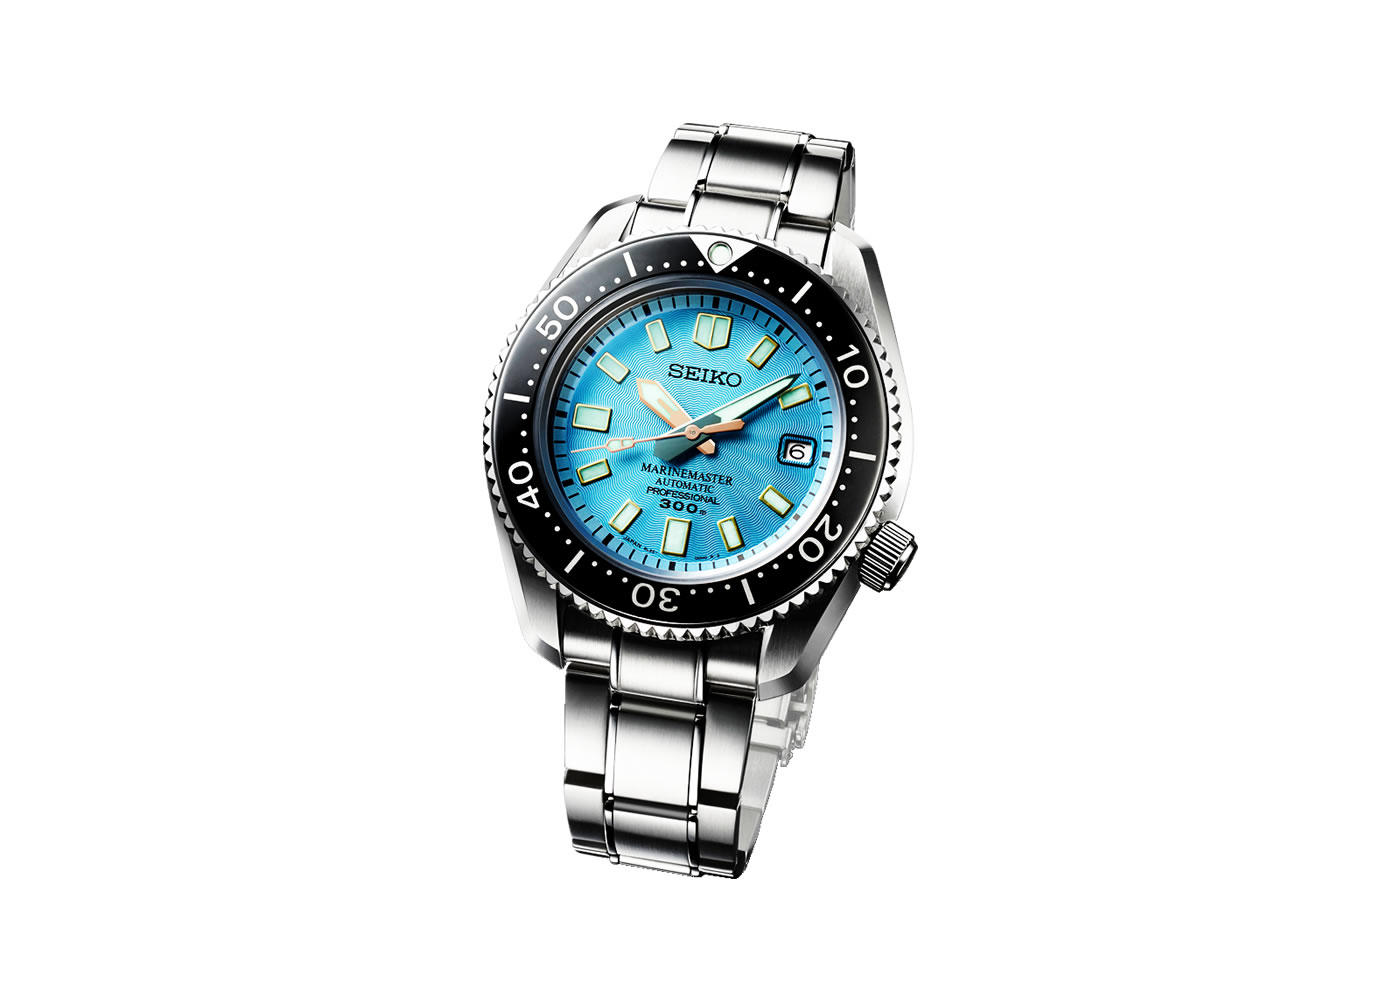 プロスペックス マリーンマスター プロフェッショナル Limited Edition(Seiko Prospex Marinemaster Professional 300m Automatic Limited Edition)Ref.SLA015